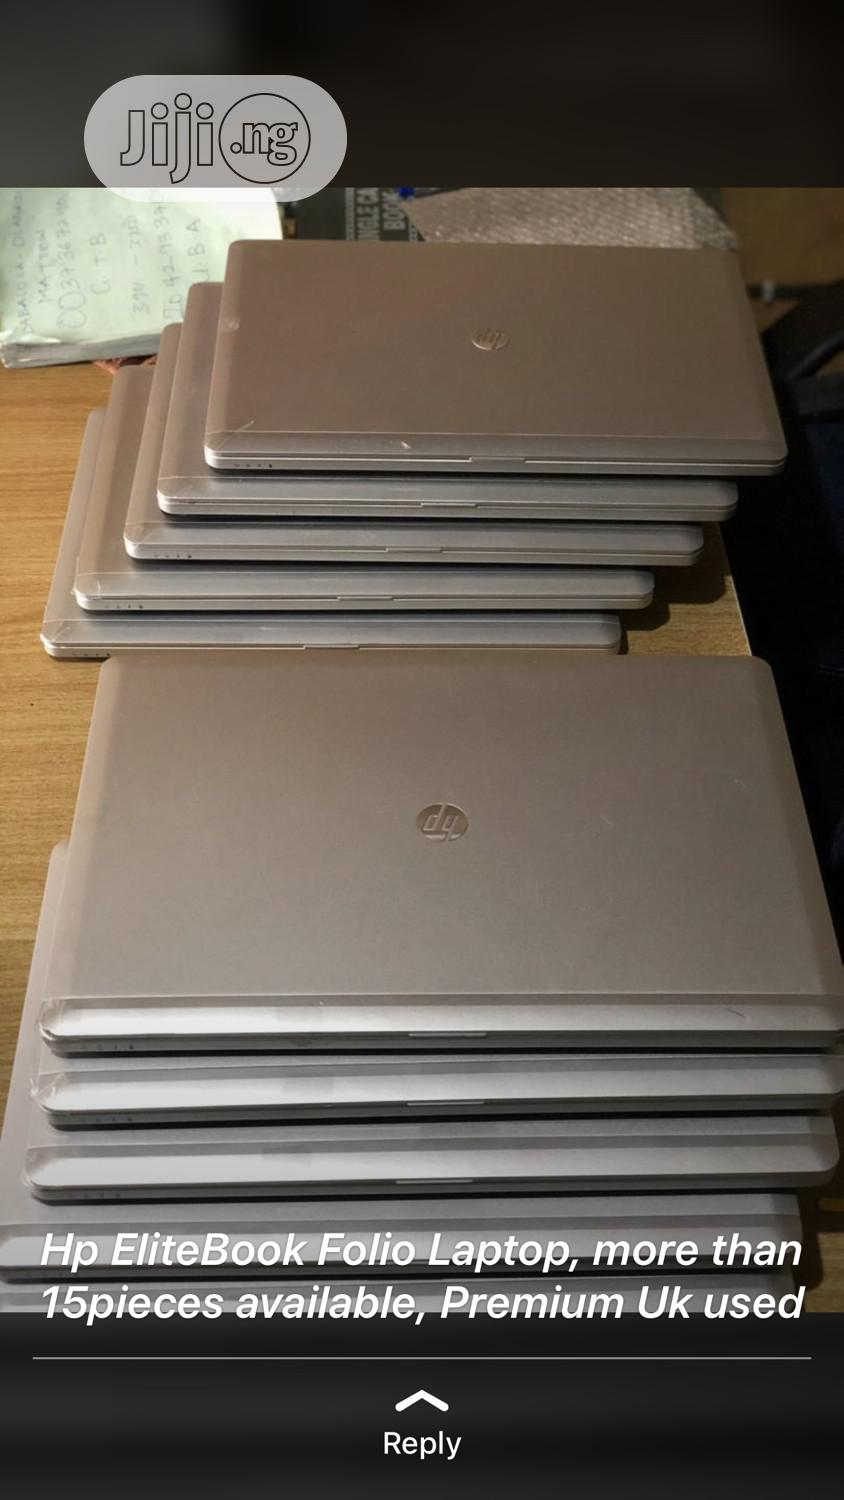 Laptop HP EliteBook Folio 9480M 4GB Intel Core i5 HDD 500GB   Laptops & Computers for sale in Wuse 2, Abuja (FCT) State, Nigeria